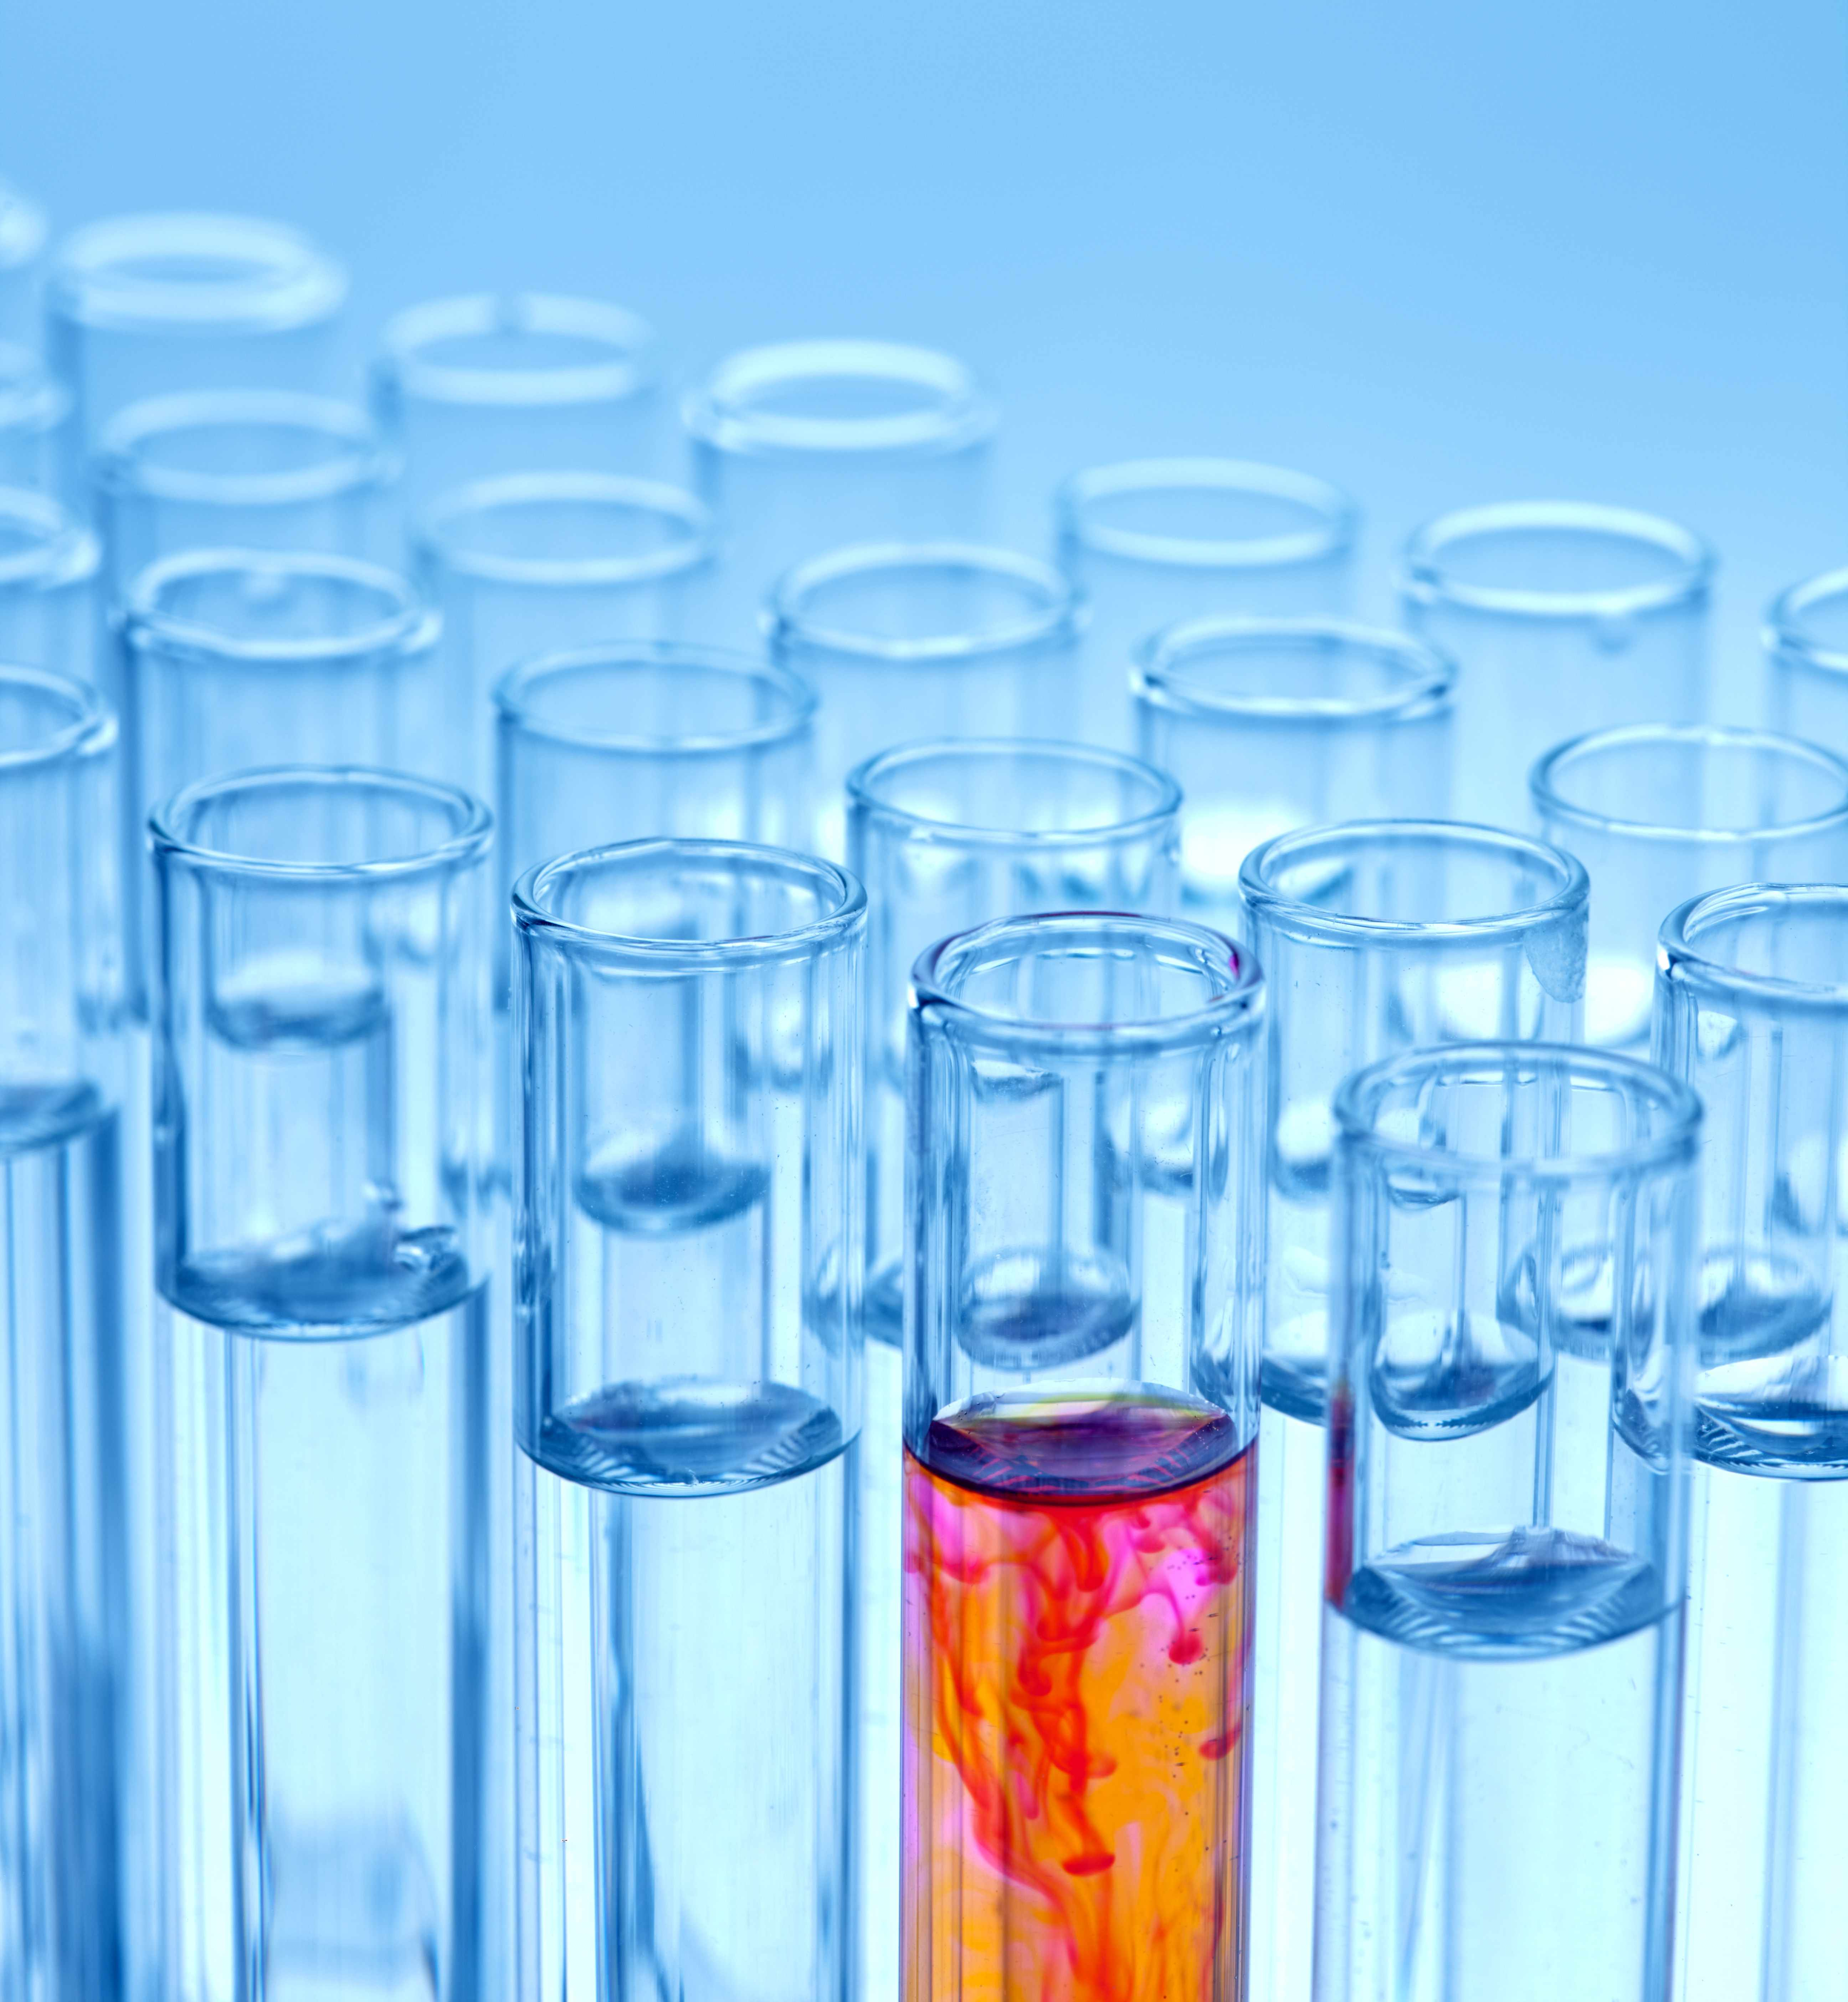 Mayo Clinic Researchers Identify Methylated DNA Markers That May One Day Lead To Noninvasive Whole Body Cancer Screening